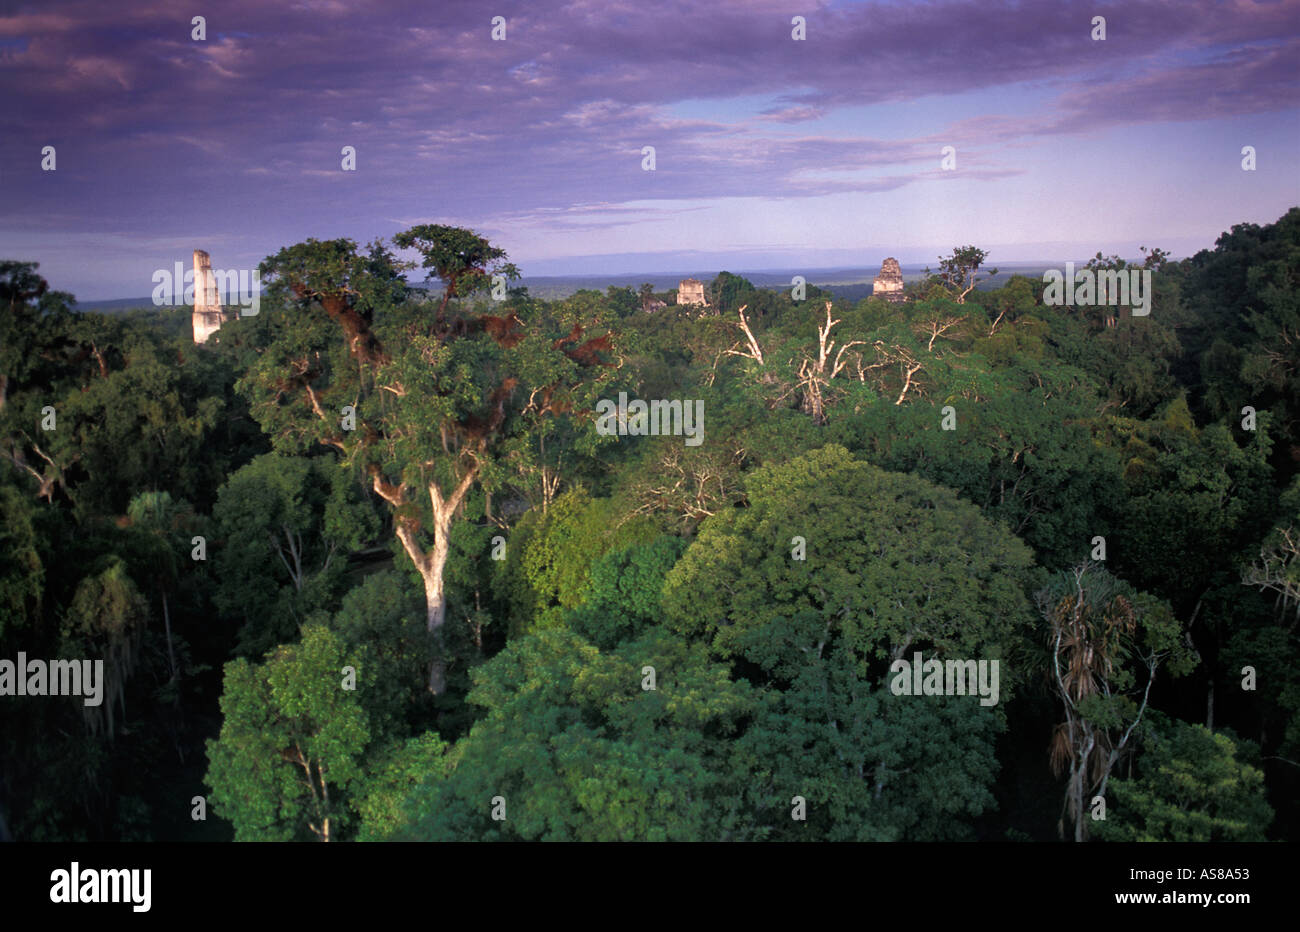 The jungle canopy viewed from the Lost World mundo perdido Tikal El Peten Guatemala Maya ruins - Stock Image